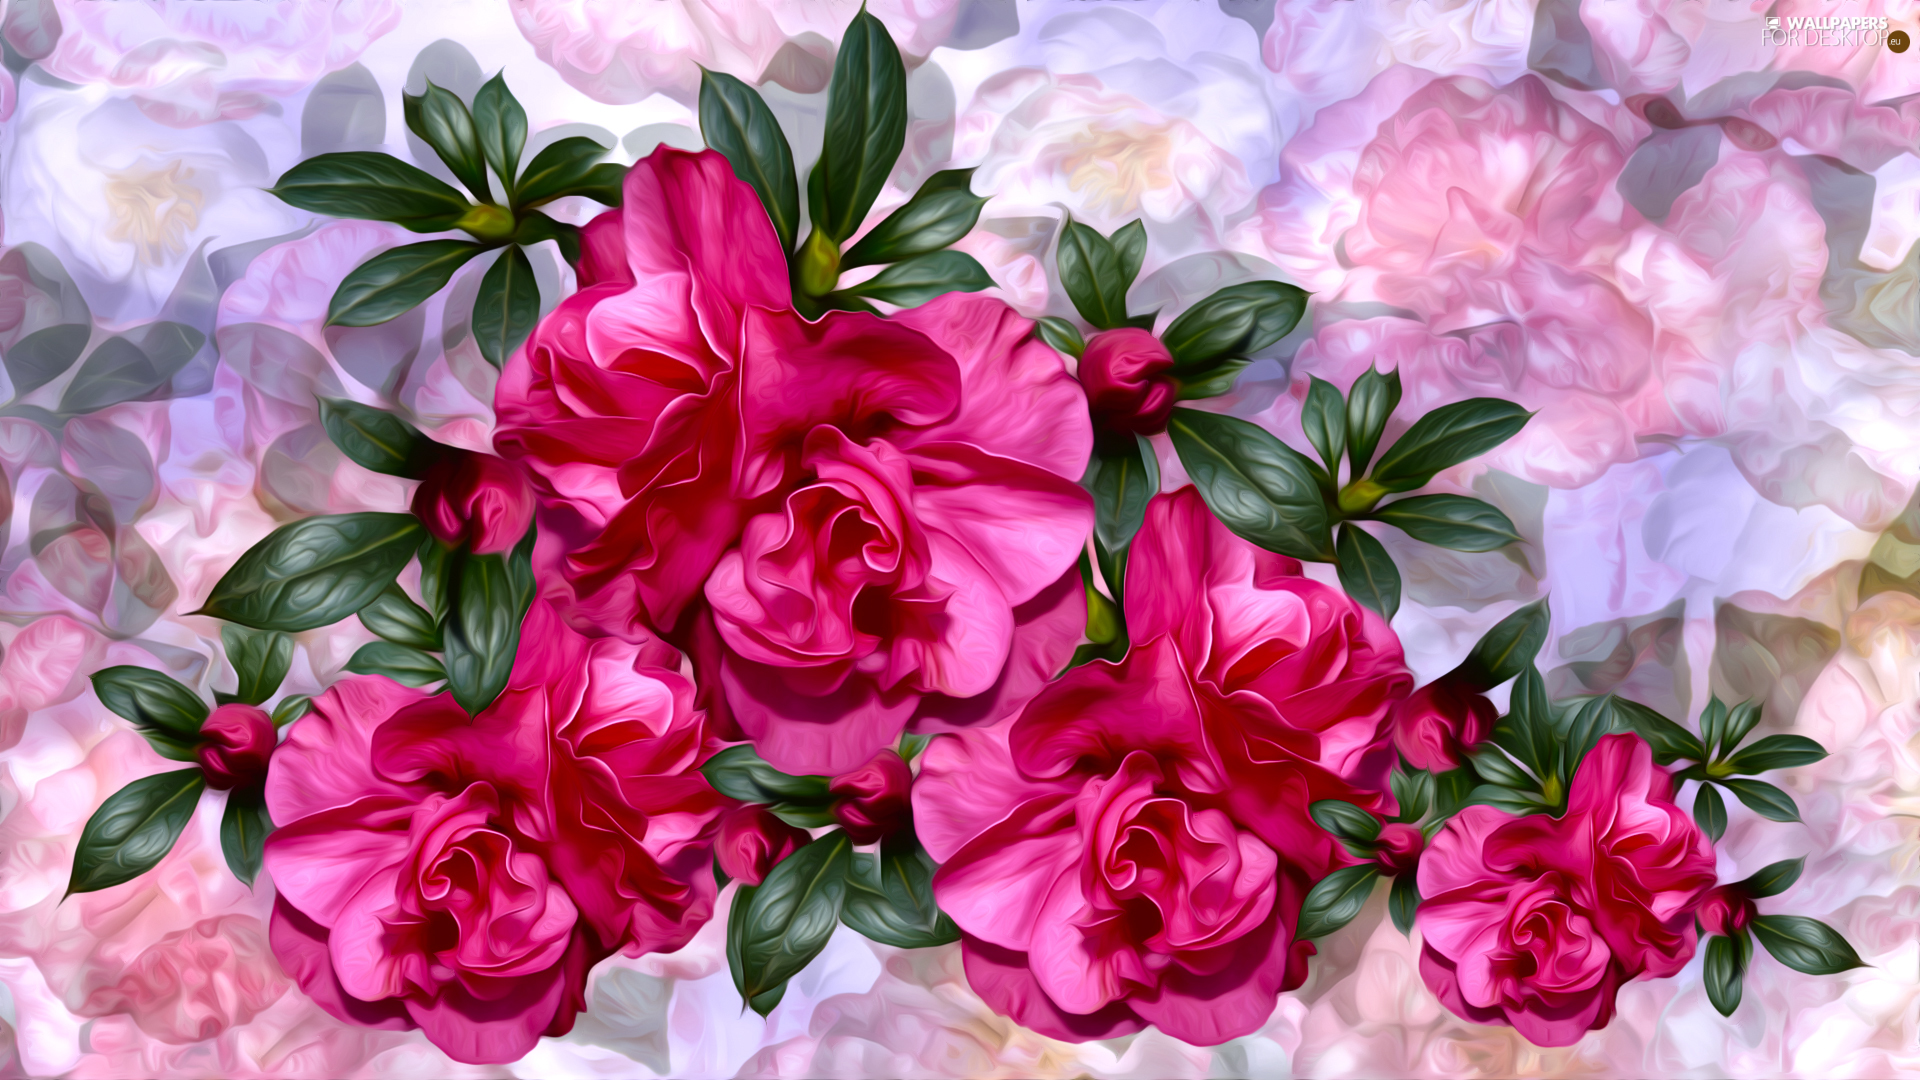 Flowers, Colorful Background, graphics, Camellias